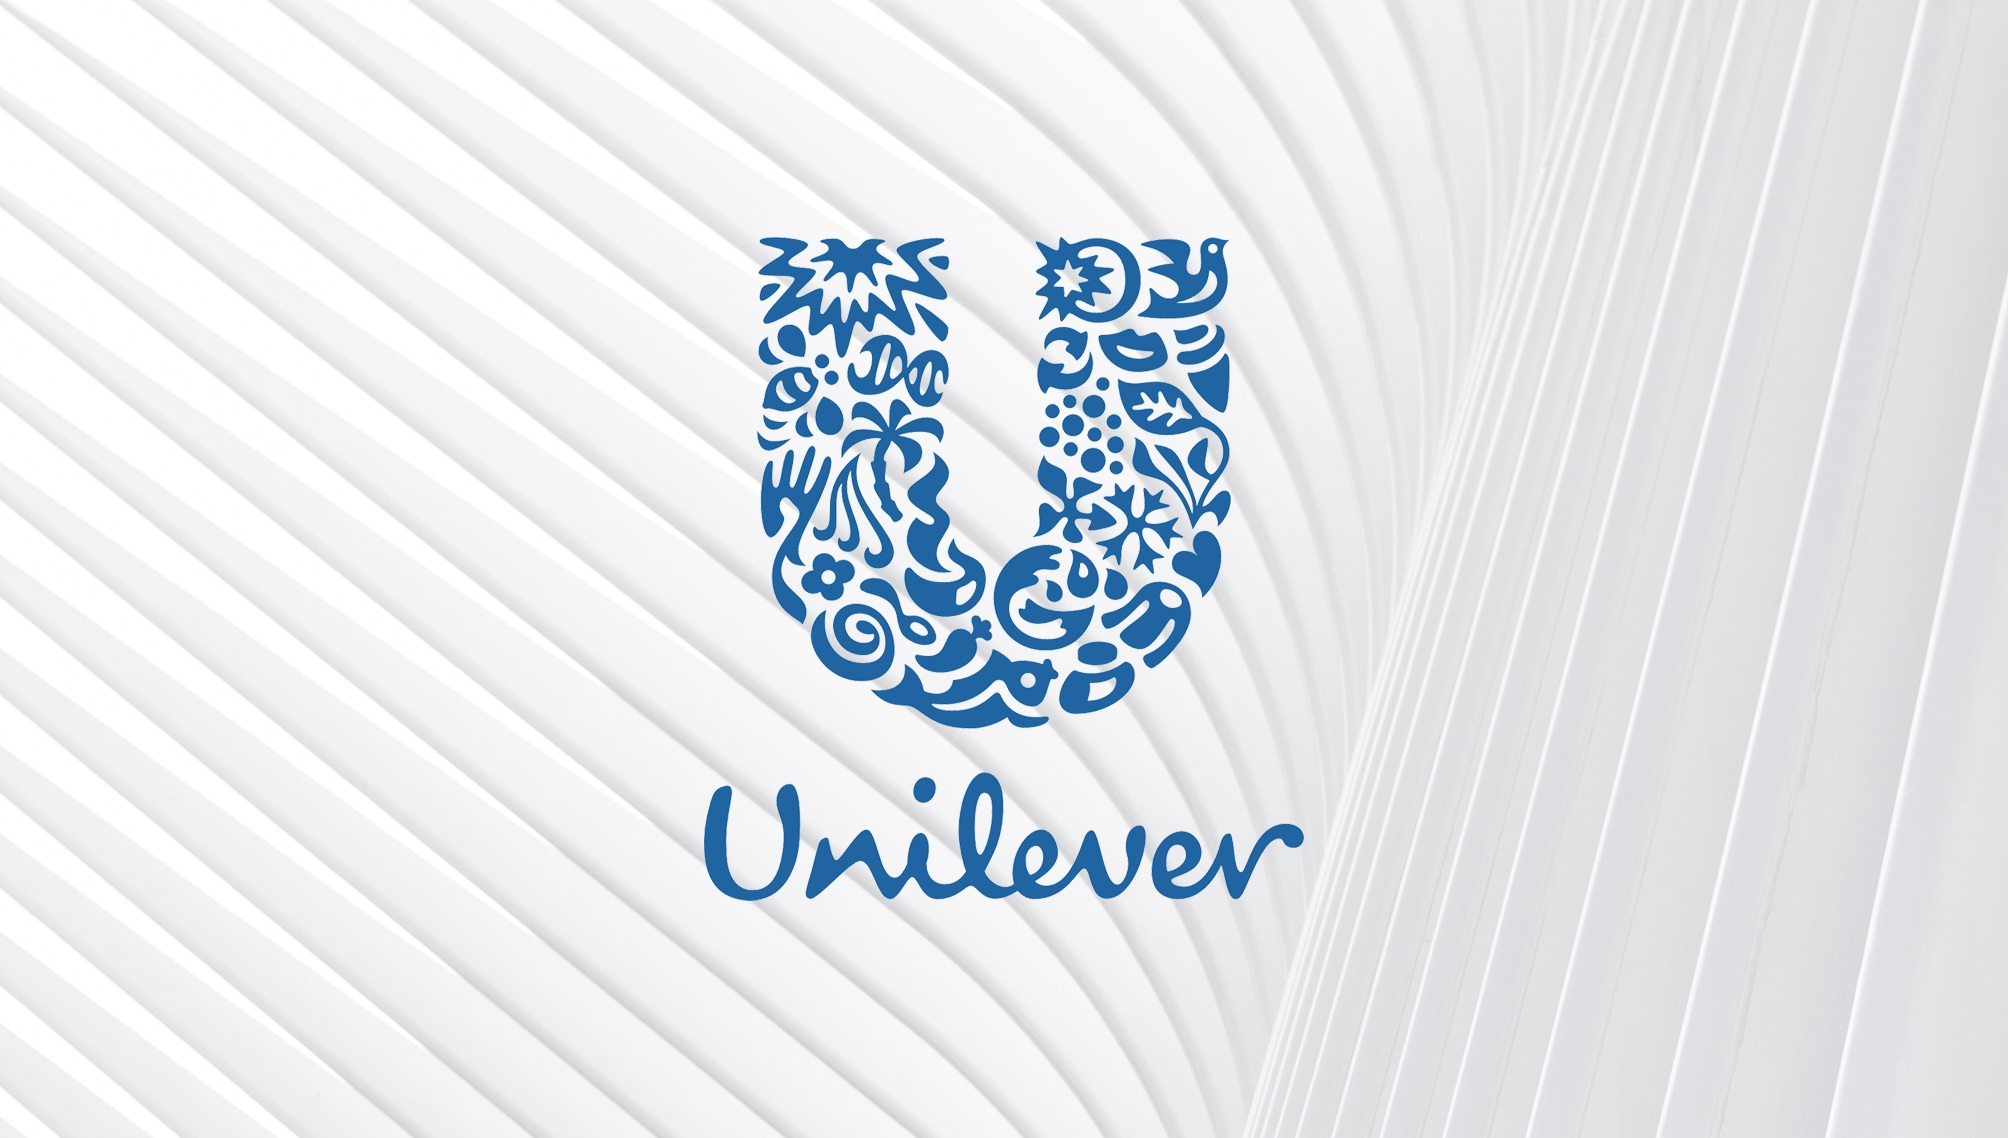 Unilever Drives Efficiency by Digitizing their Supply Chain